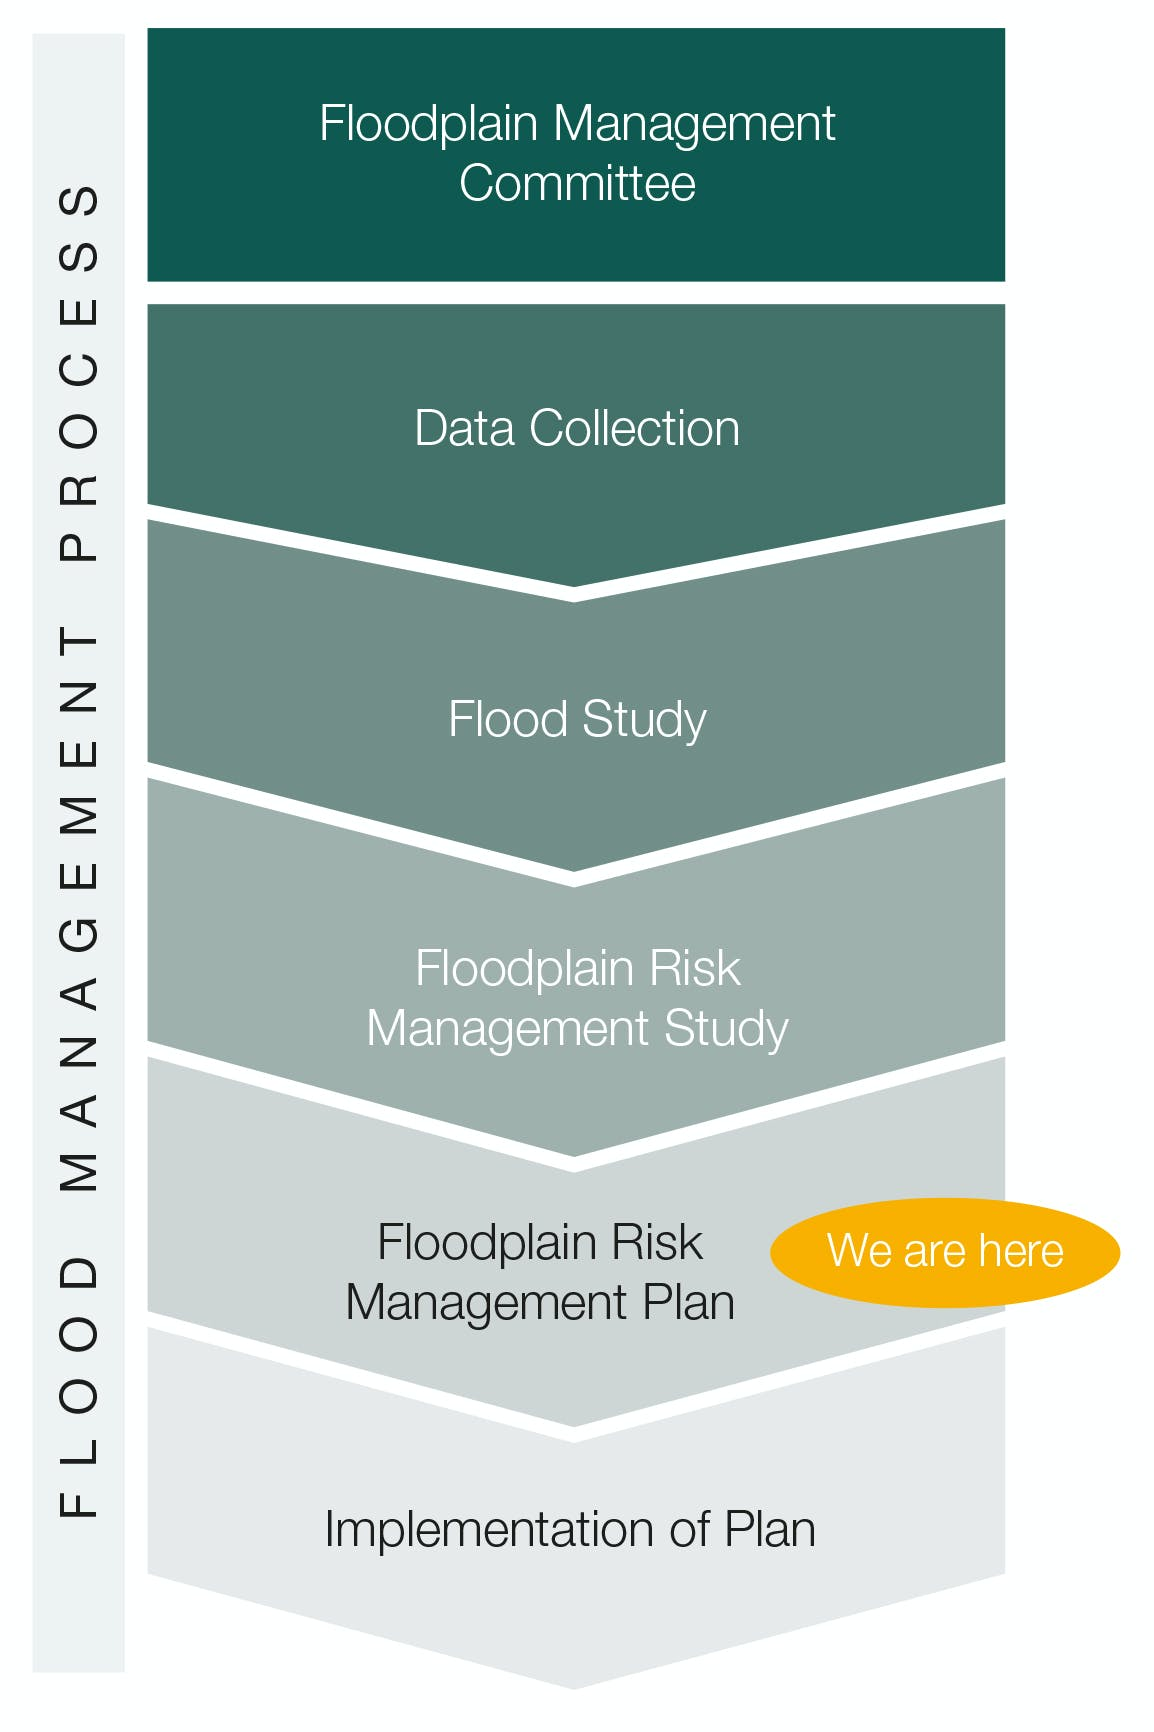 Flood Management Process